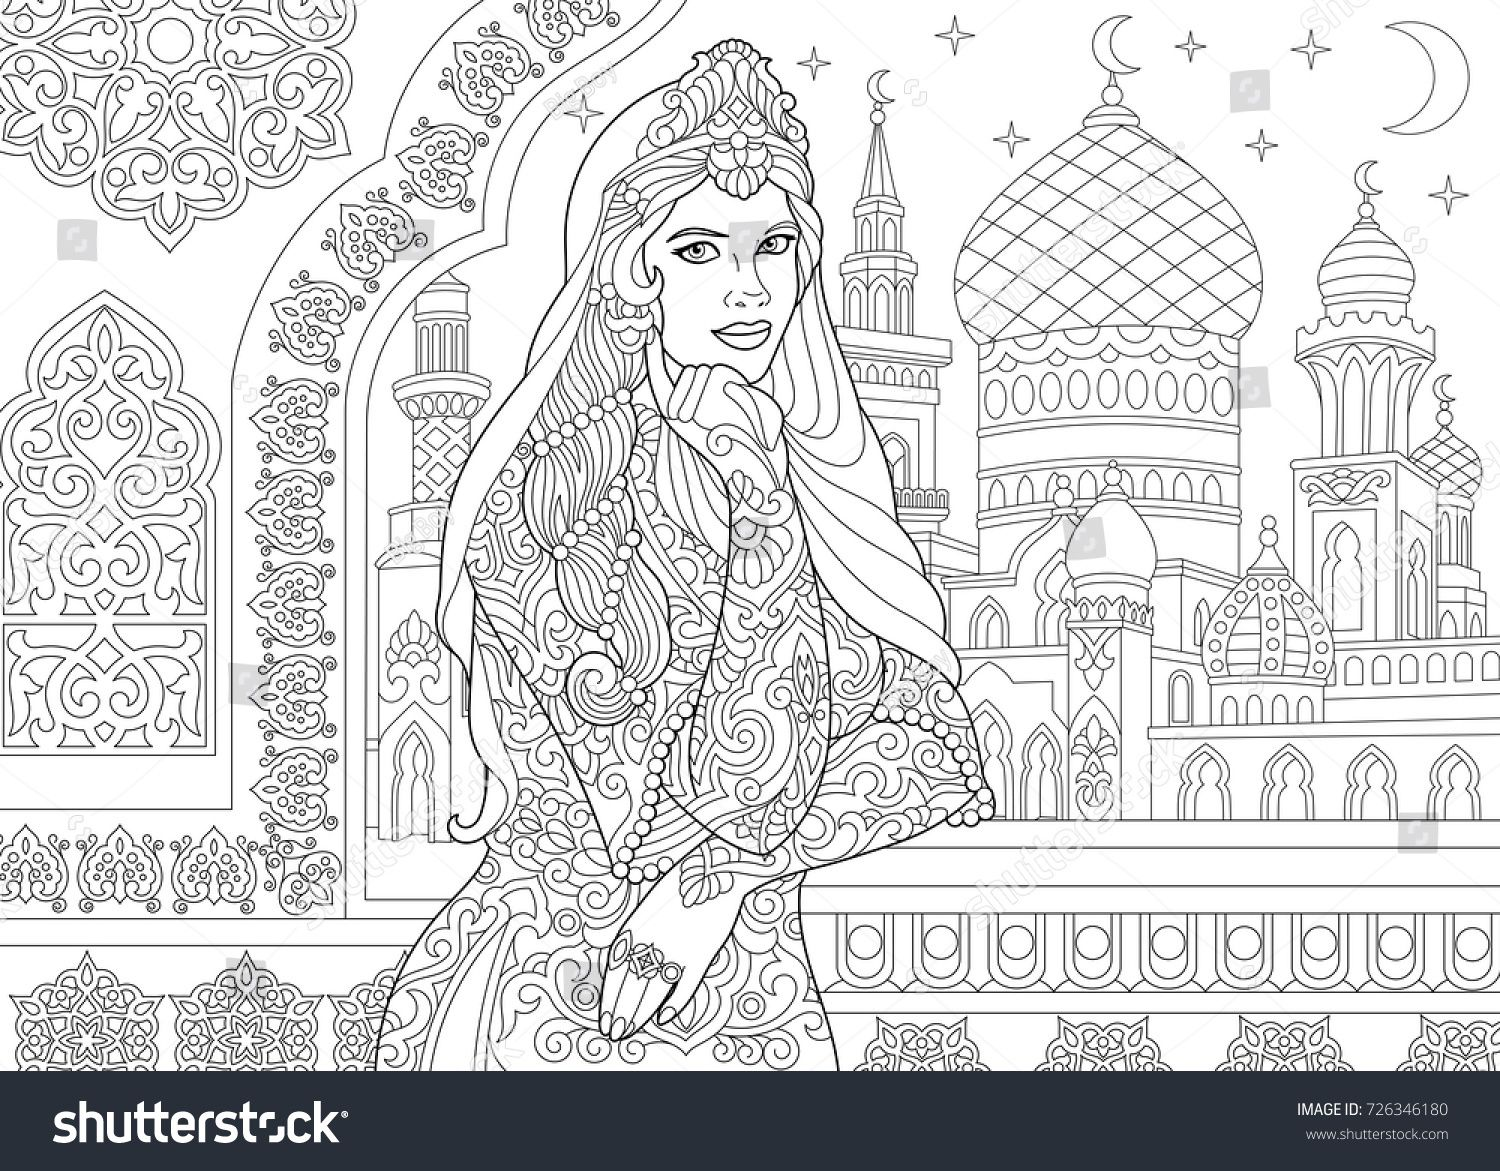 Coloring Page Of Turkish Woman Islamic Filigree Decor Arabic Mosque Crescent Moons And Stars On The Background Freehand Sketch Ausmalbilder Ausmalen Bilder